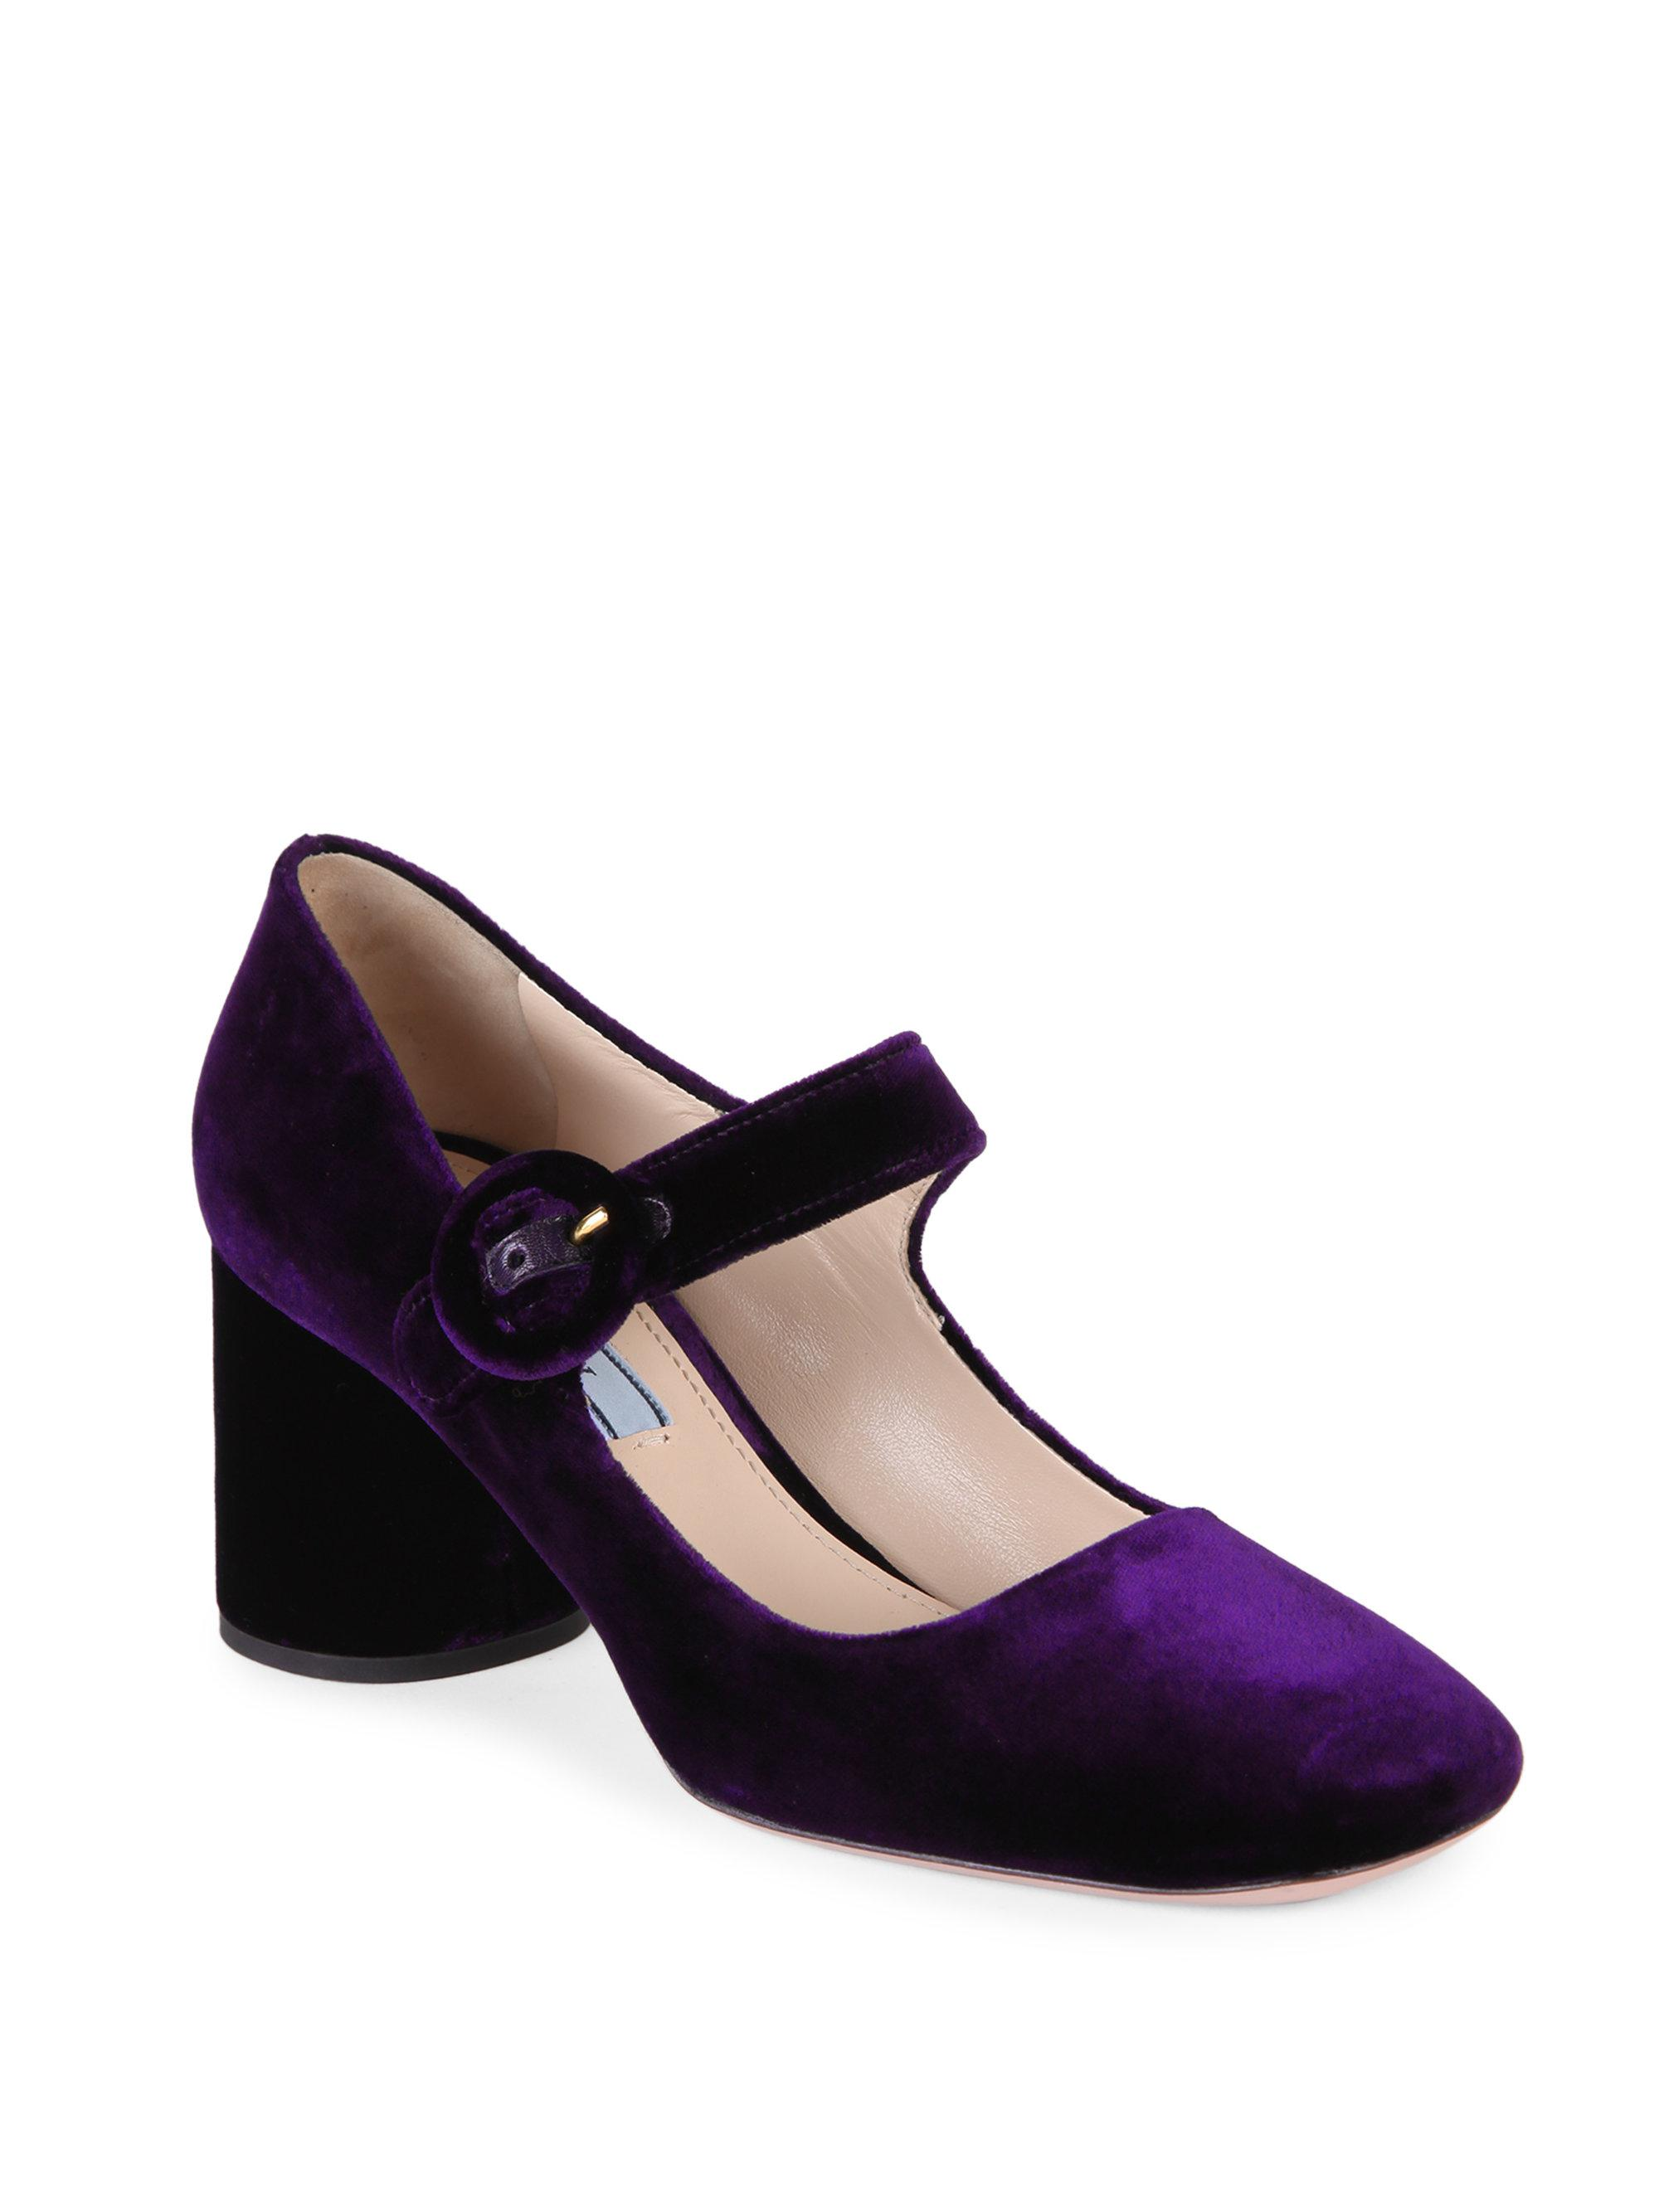 b4f75d209766 Lyst - Prada Velvet Mary Jane Block Heel Pumps in Purple